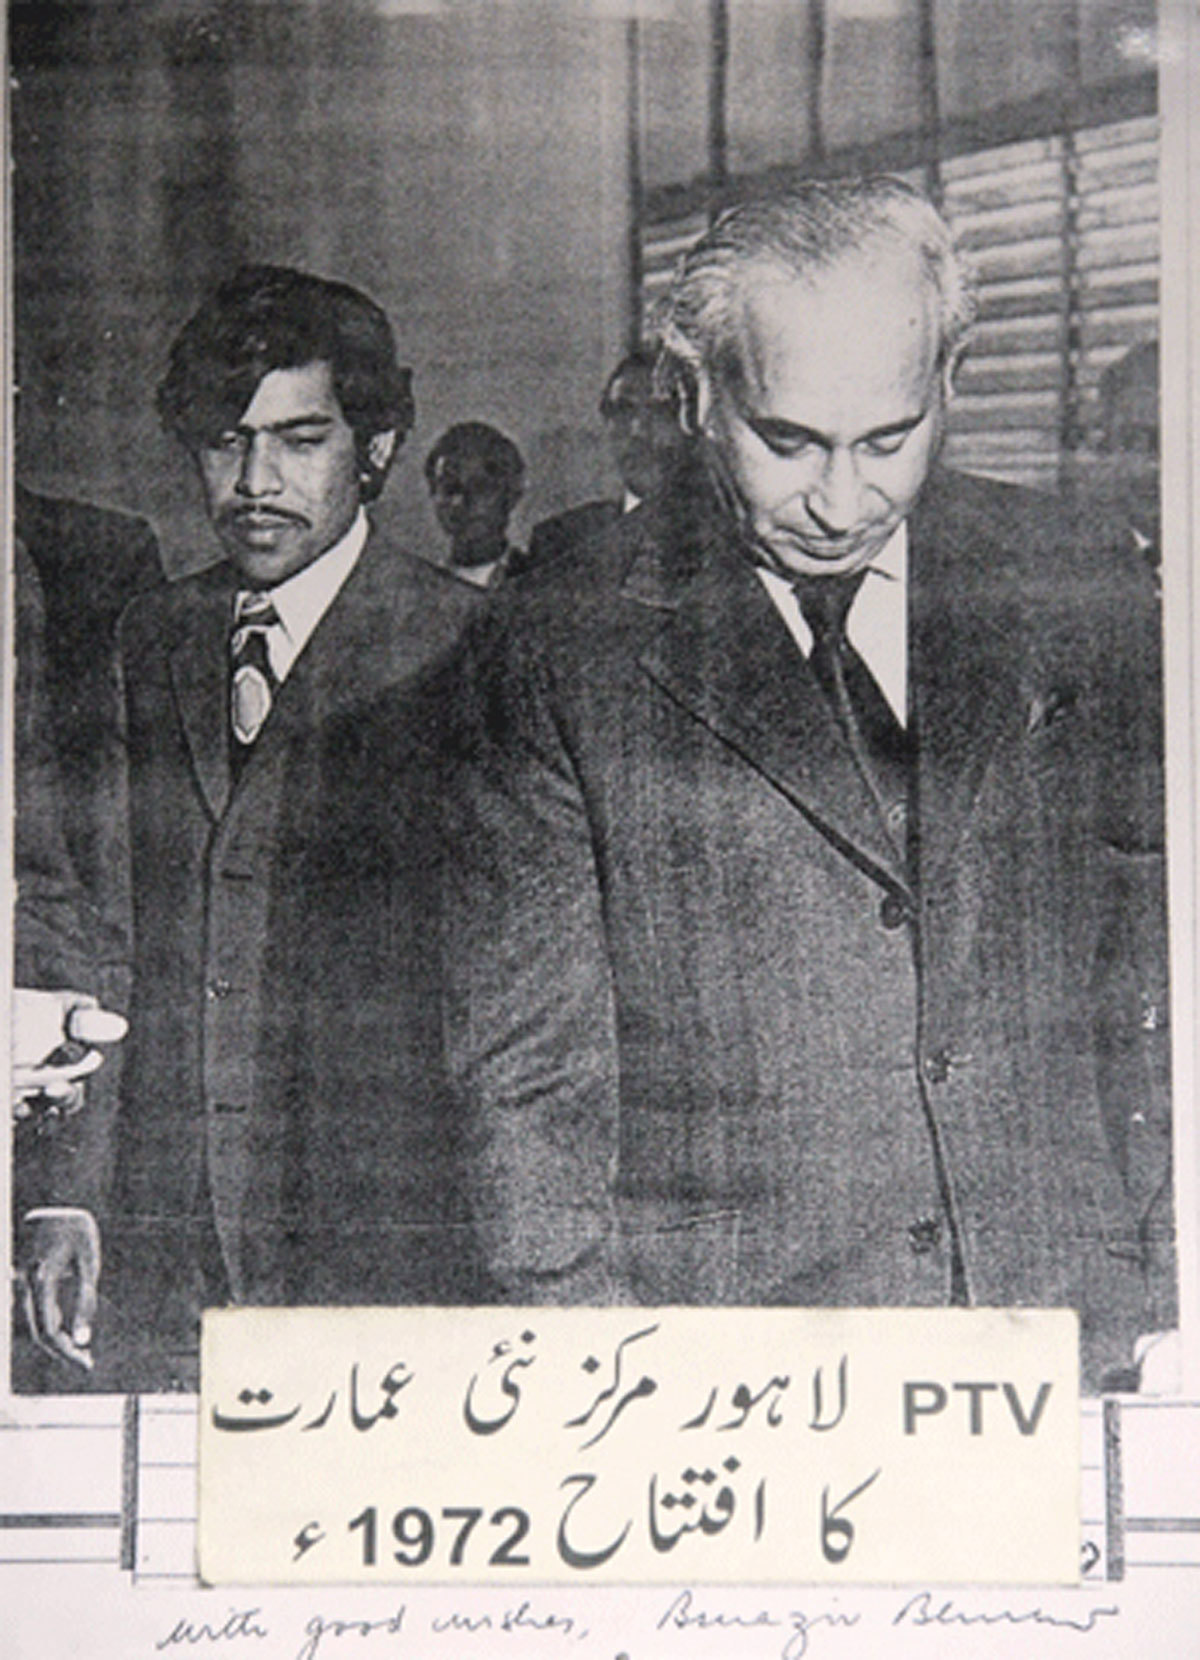 Zulfikar Ali Bhutto at the inauguration of PTV Lahore centre's then new building in 1972. The image also bears Benazir Bhutto's signature at the bottom